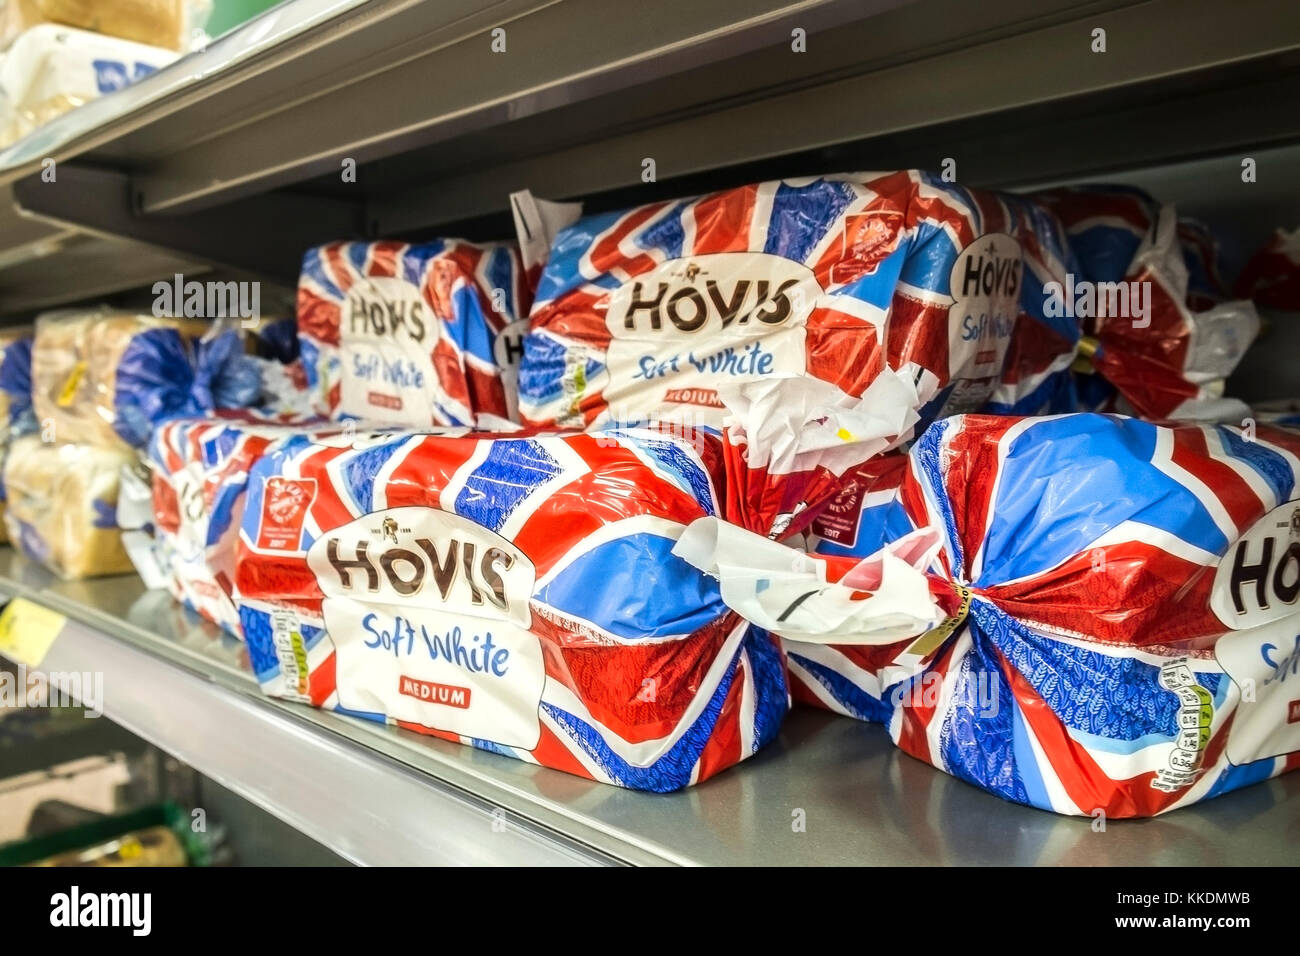 Loaves of Hovis Soft White bread wrapped in Union Flag Union Jack colours. - Stock Image